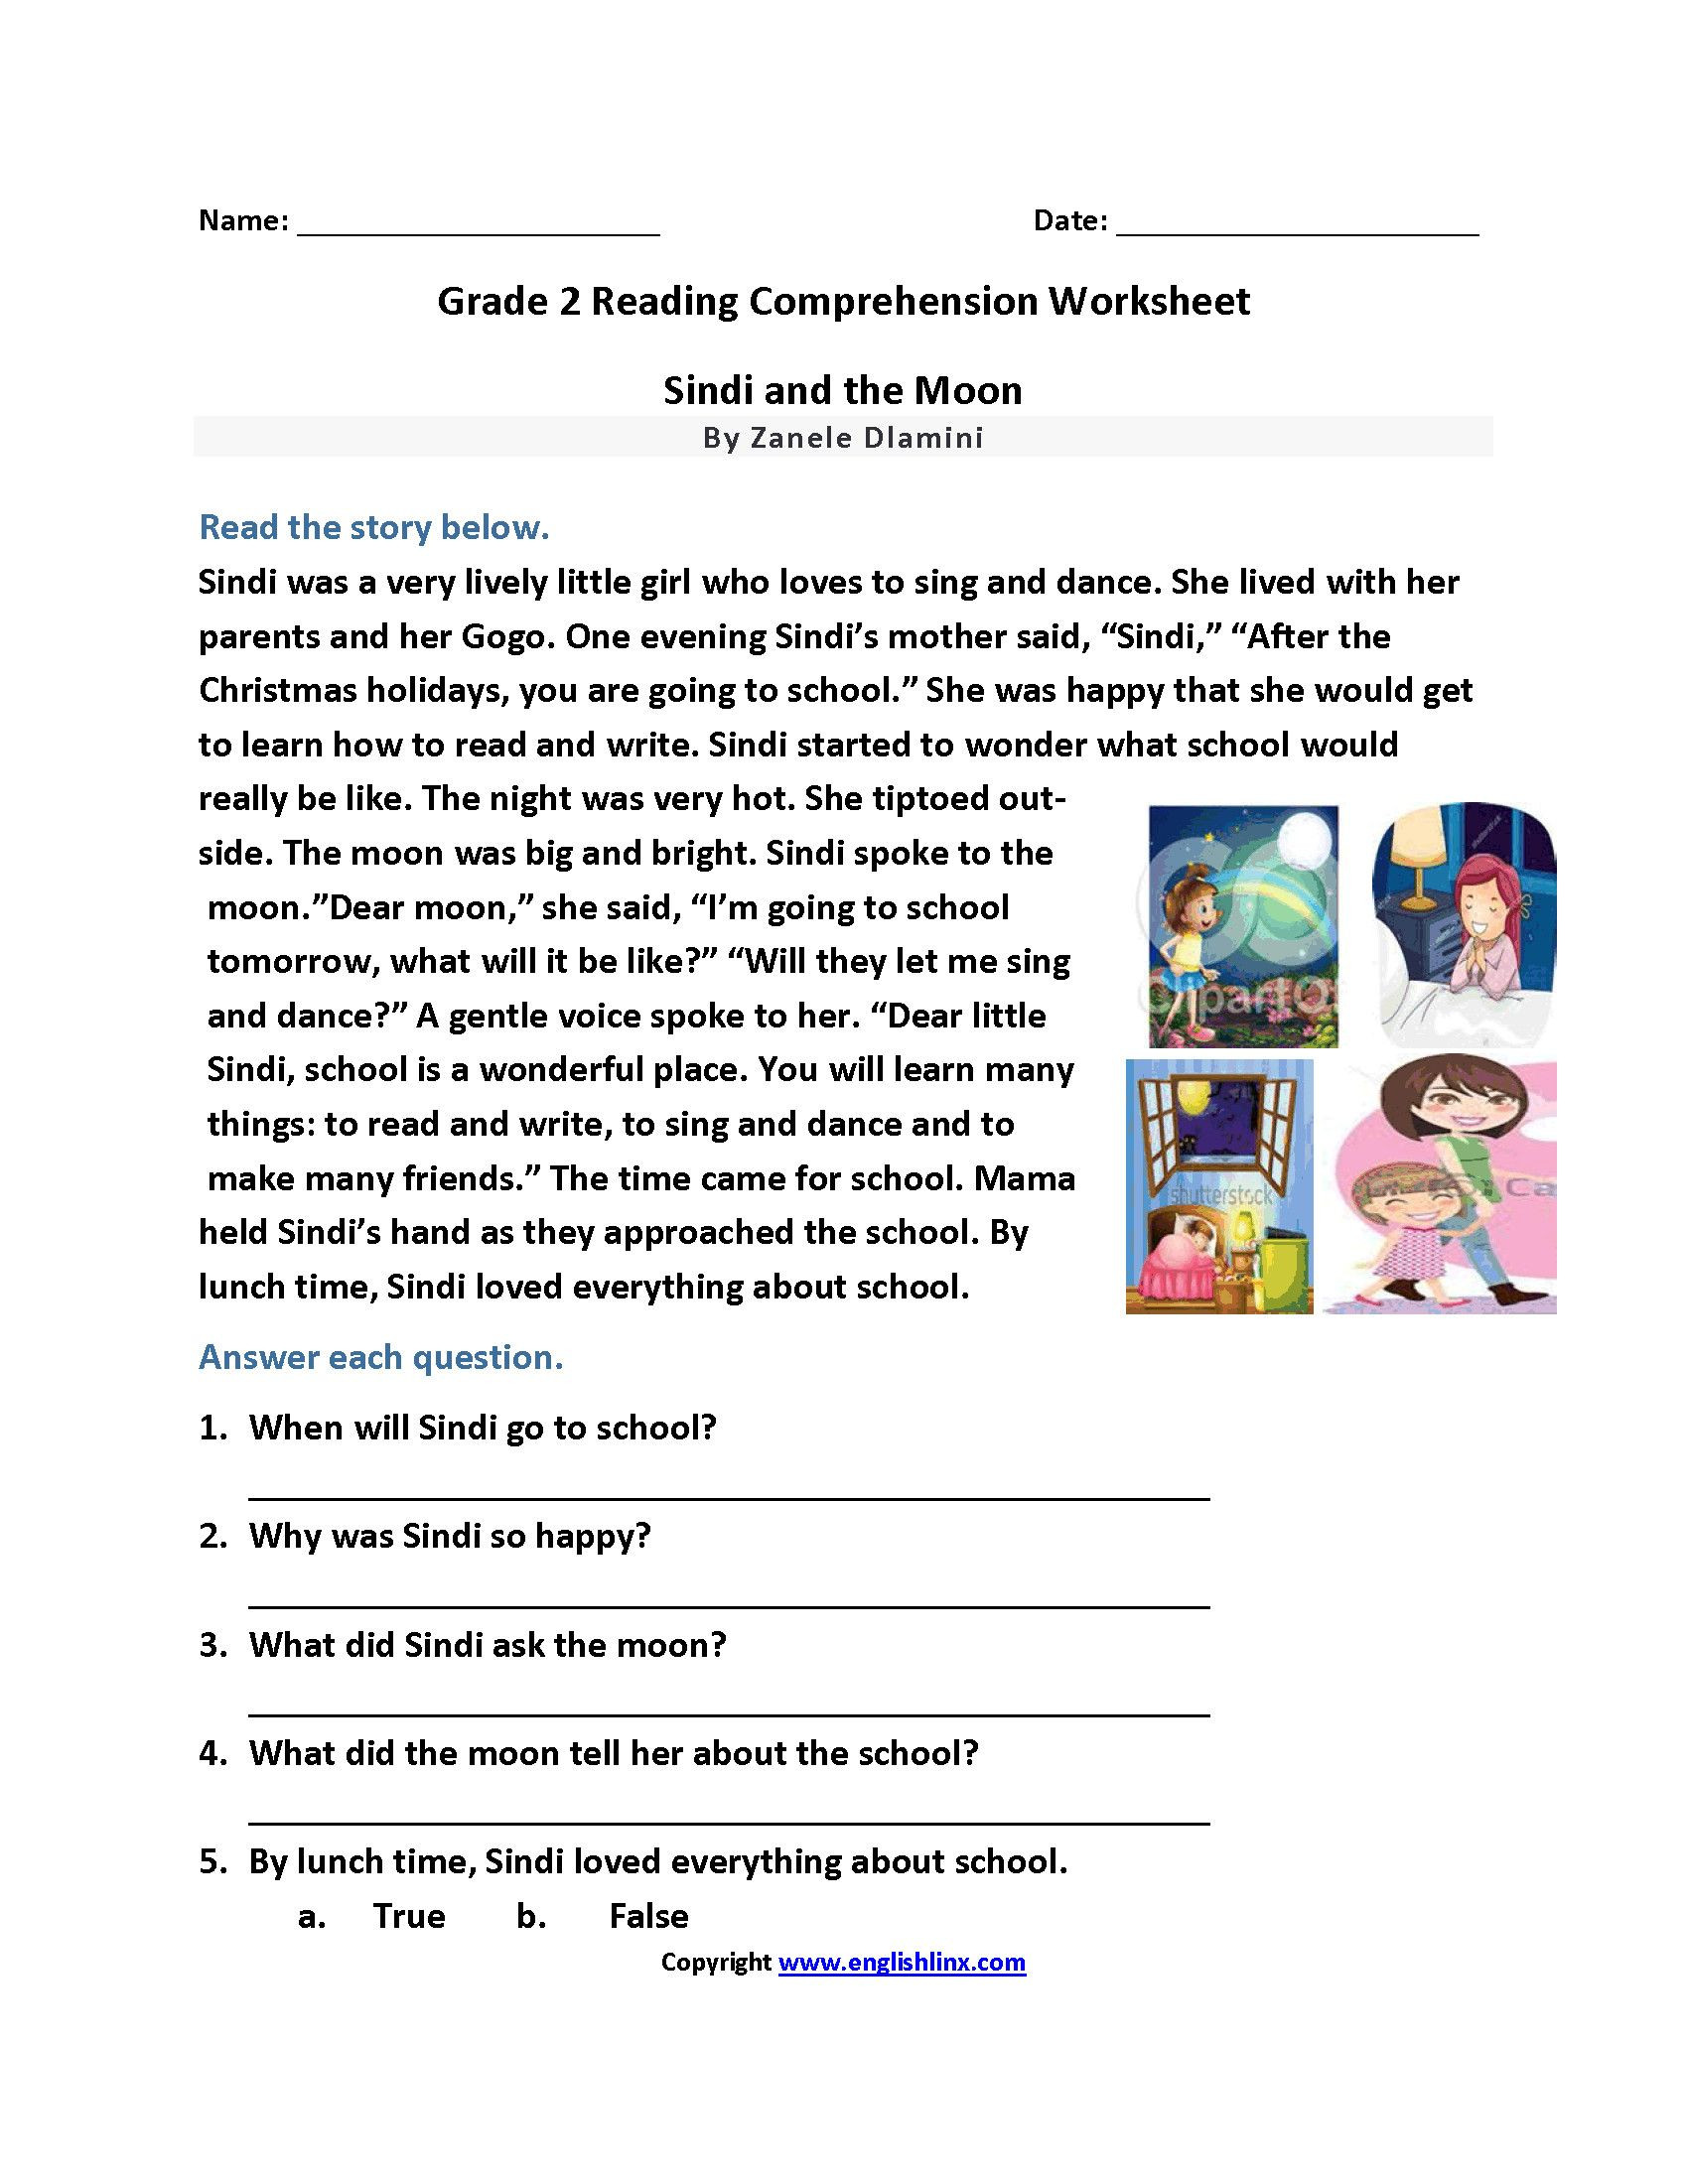 Second Grade Reading Comprehension Worksheets Reading Exercises for 2nd Graders